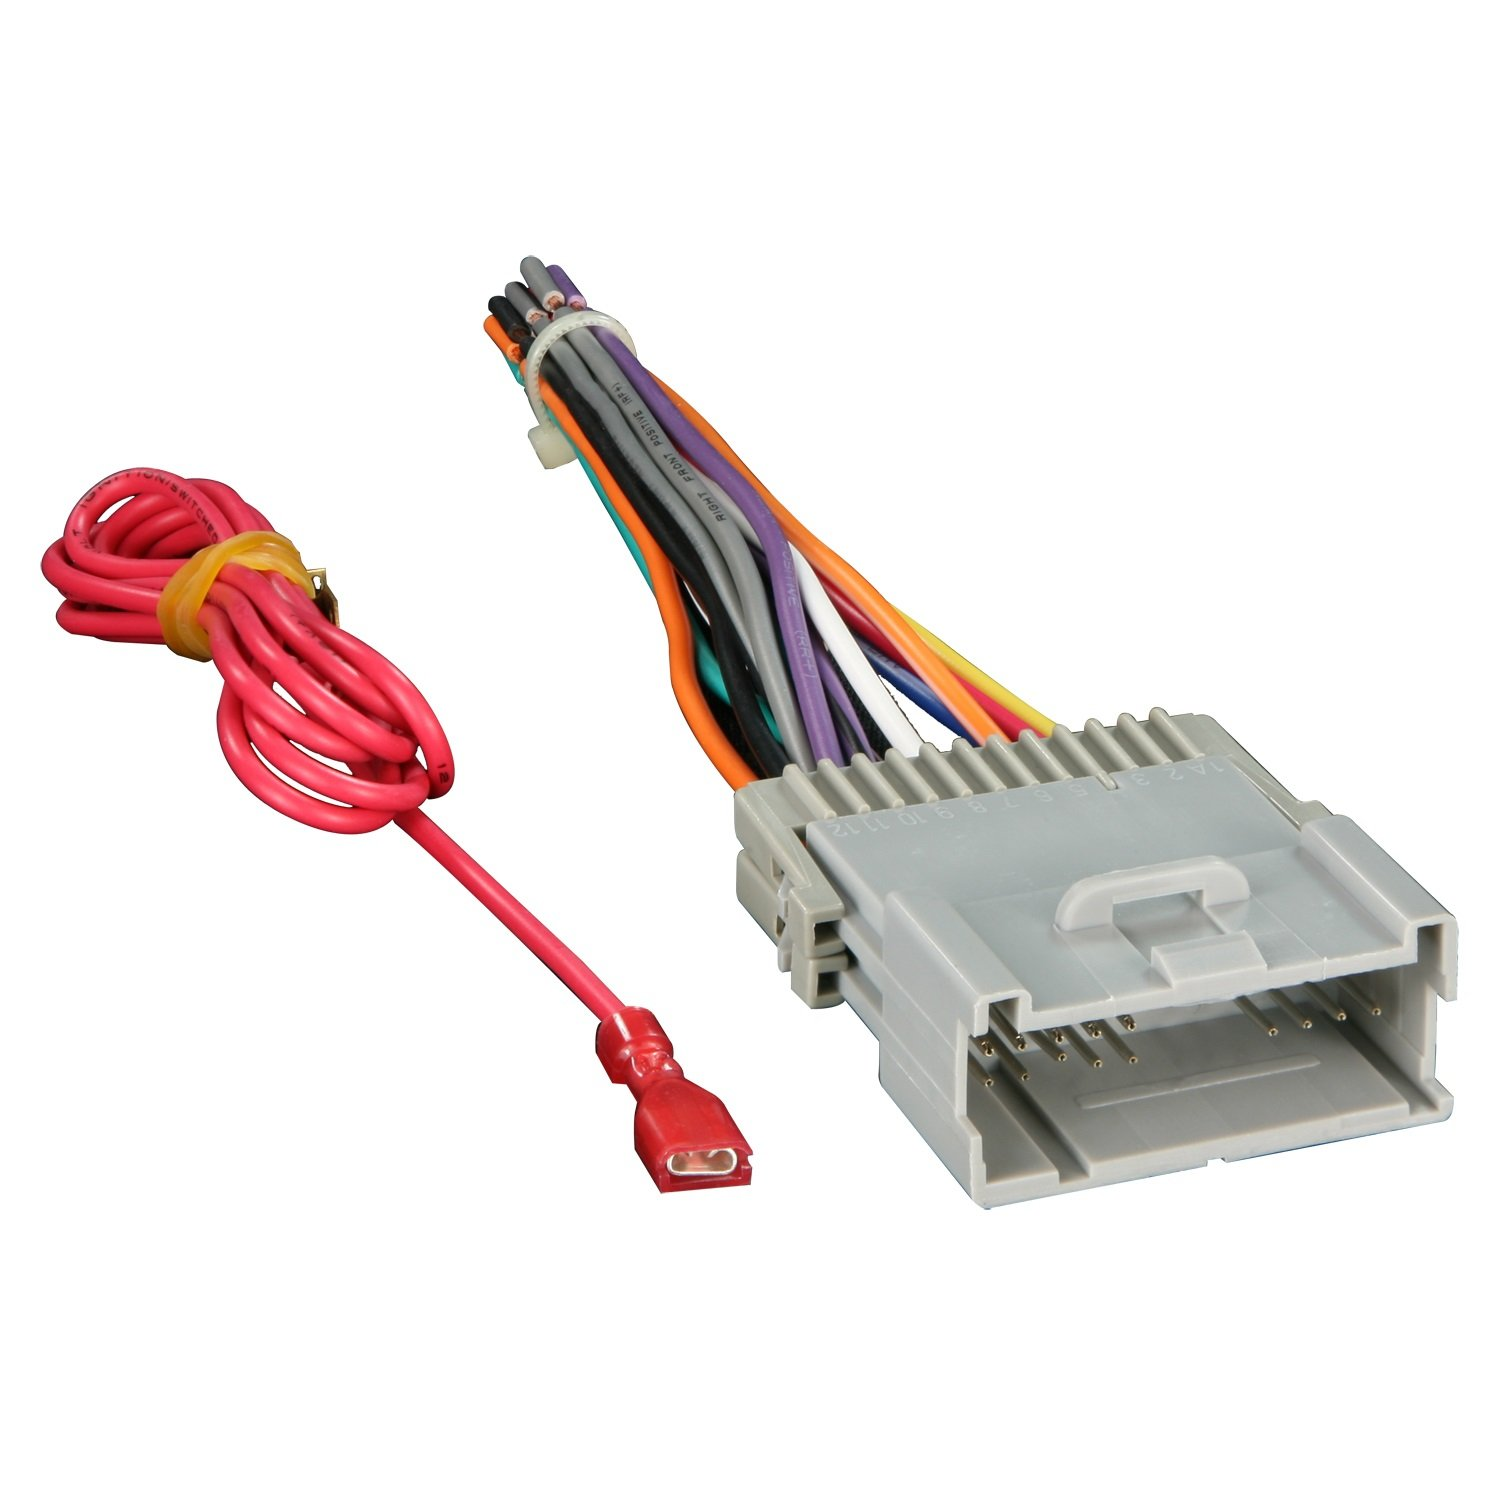 61eewxp9orL._SL1500_ amazon com metra 70 2003 radio wiring harness for gm 98 08 car radio wiring harness adapters at panicattacktreatment.co